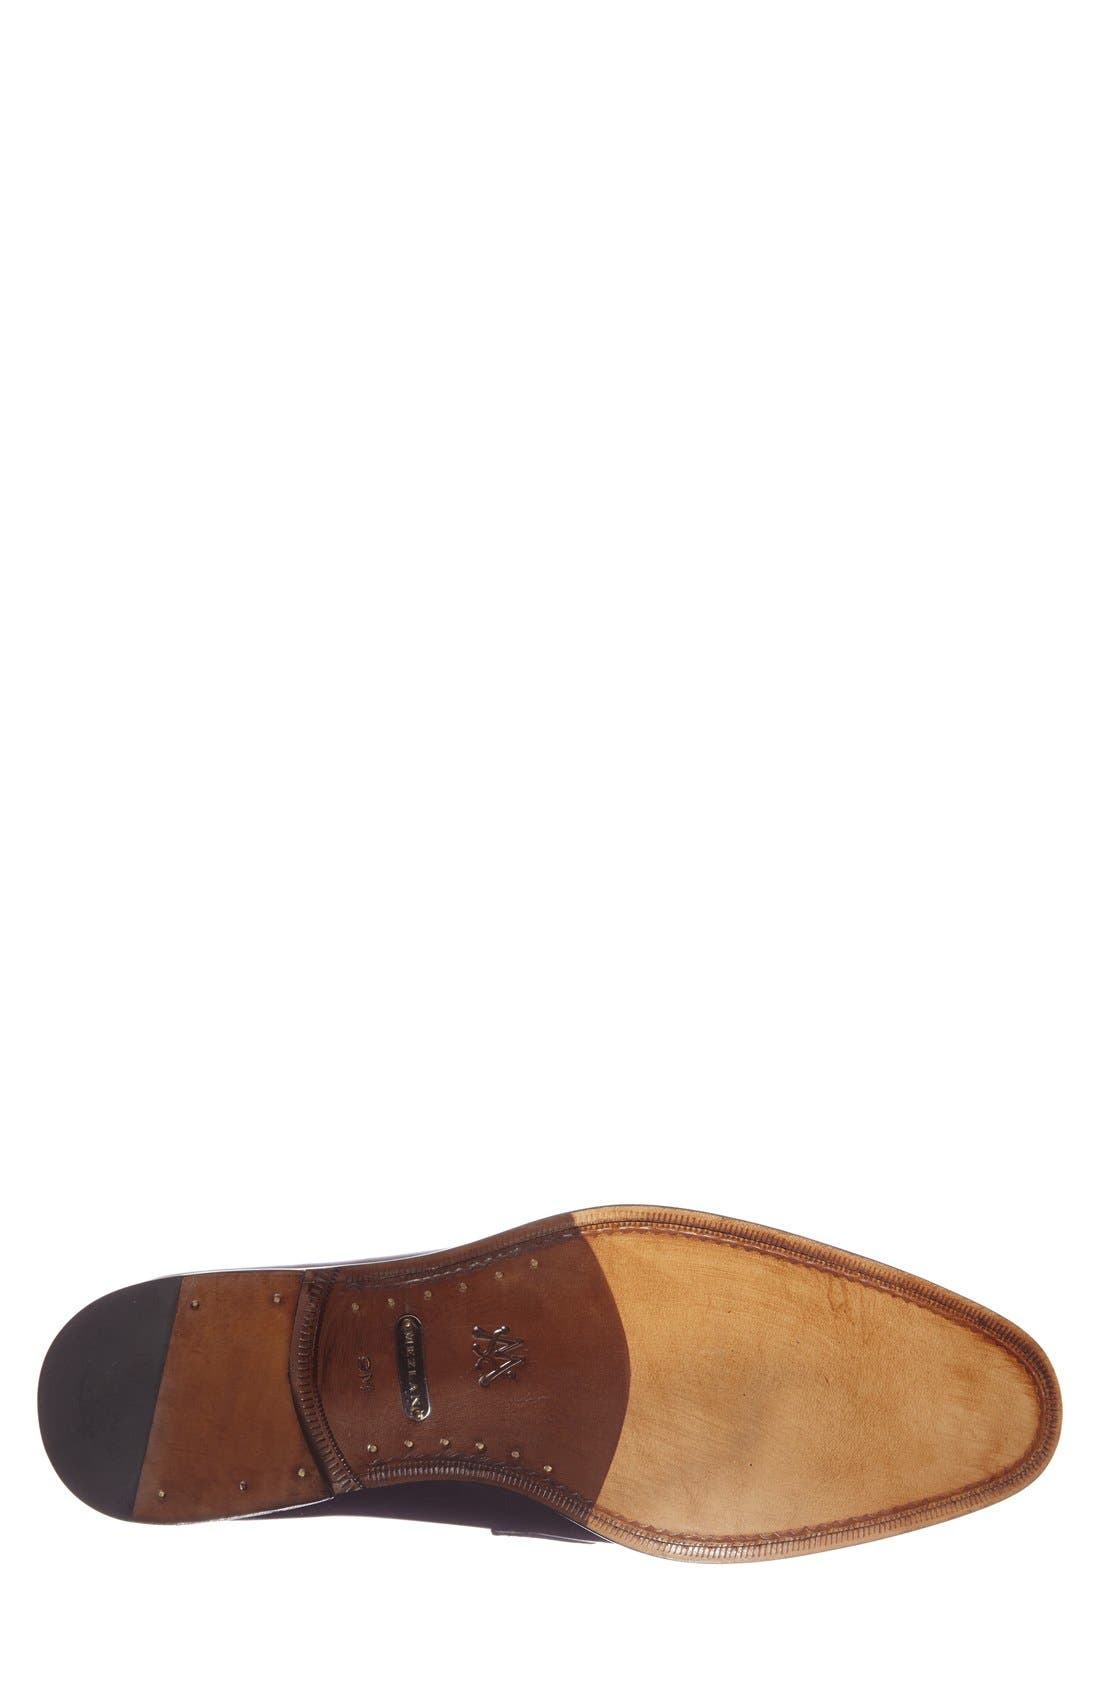 'Worcester' Bit Loafer,                             Alternate thumbnail 4, color,                             Black